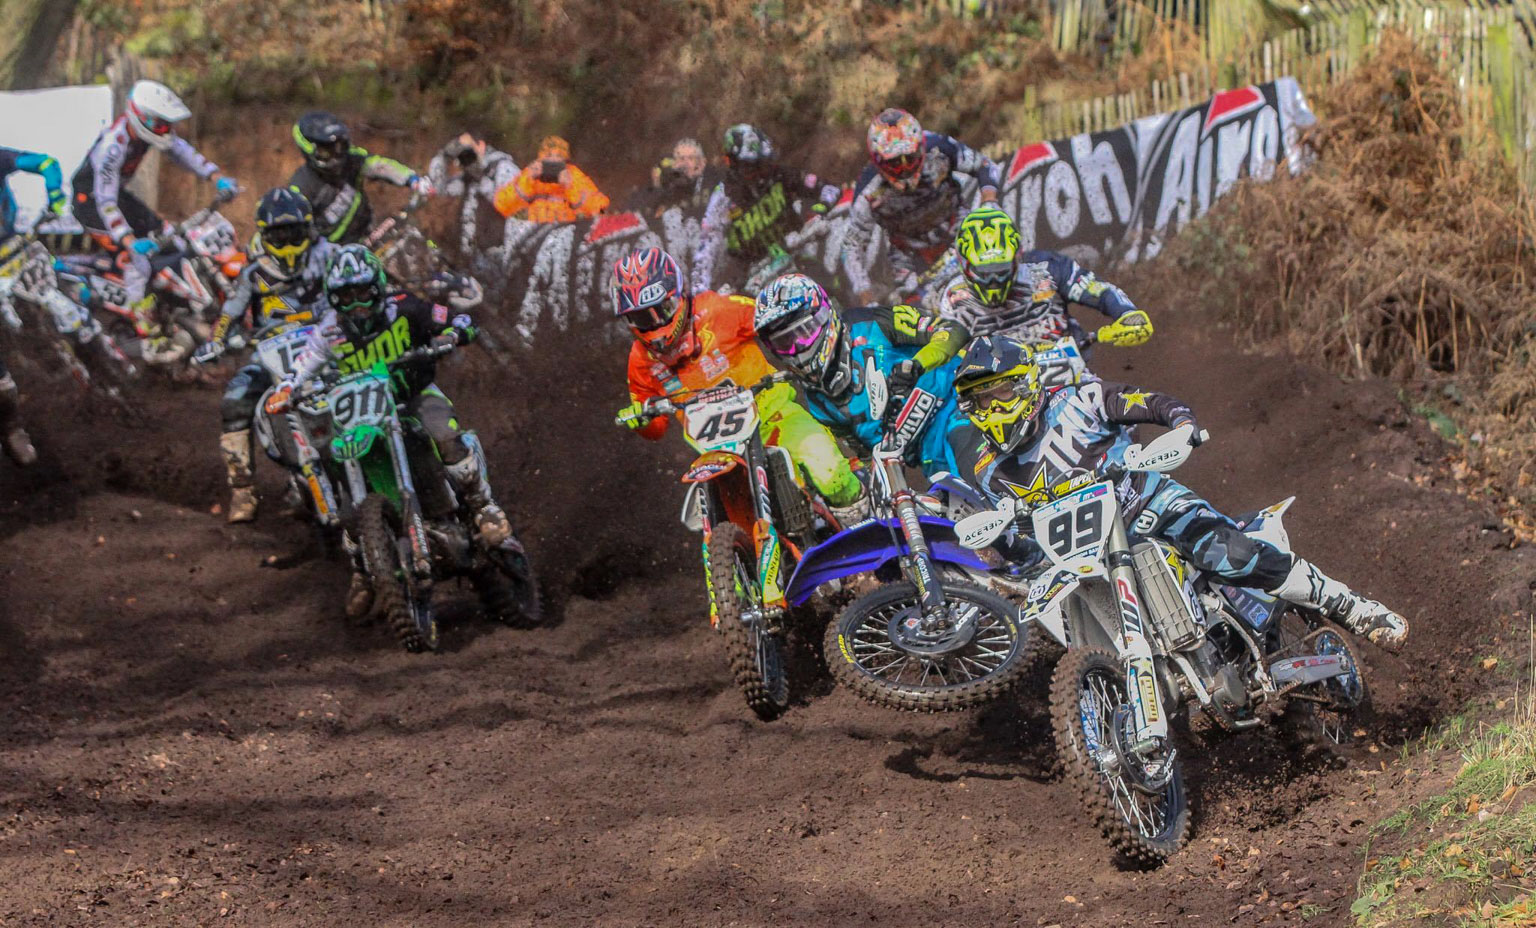 Max Anstie sneaks into the lead as Simpson loses control